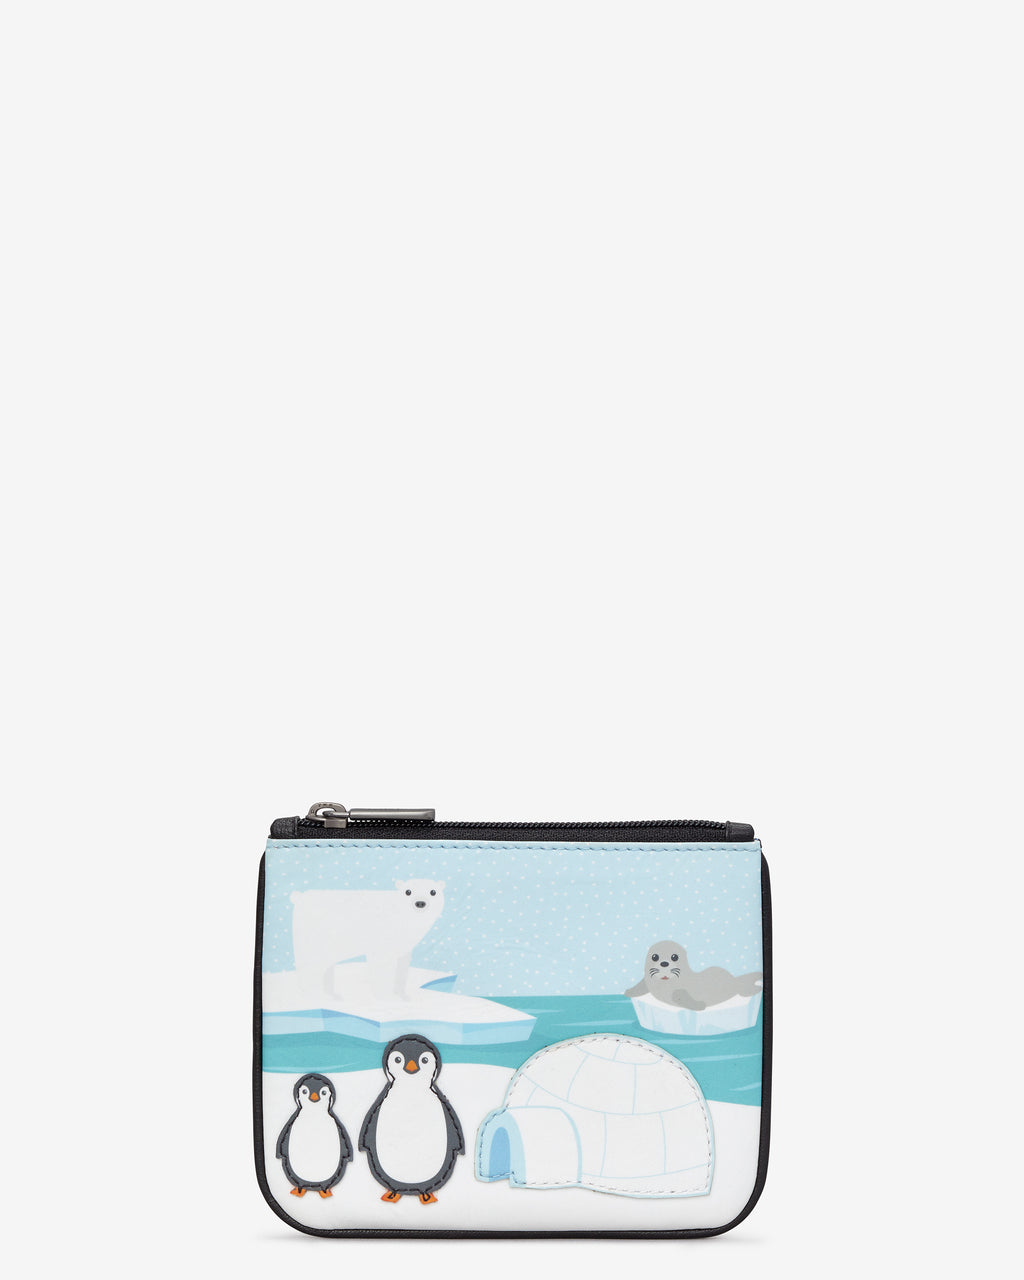 Yoshi Arctic Leather Zip Top Purse